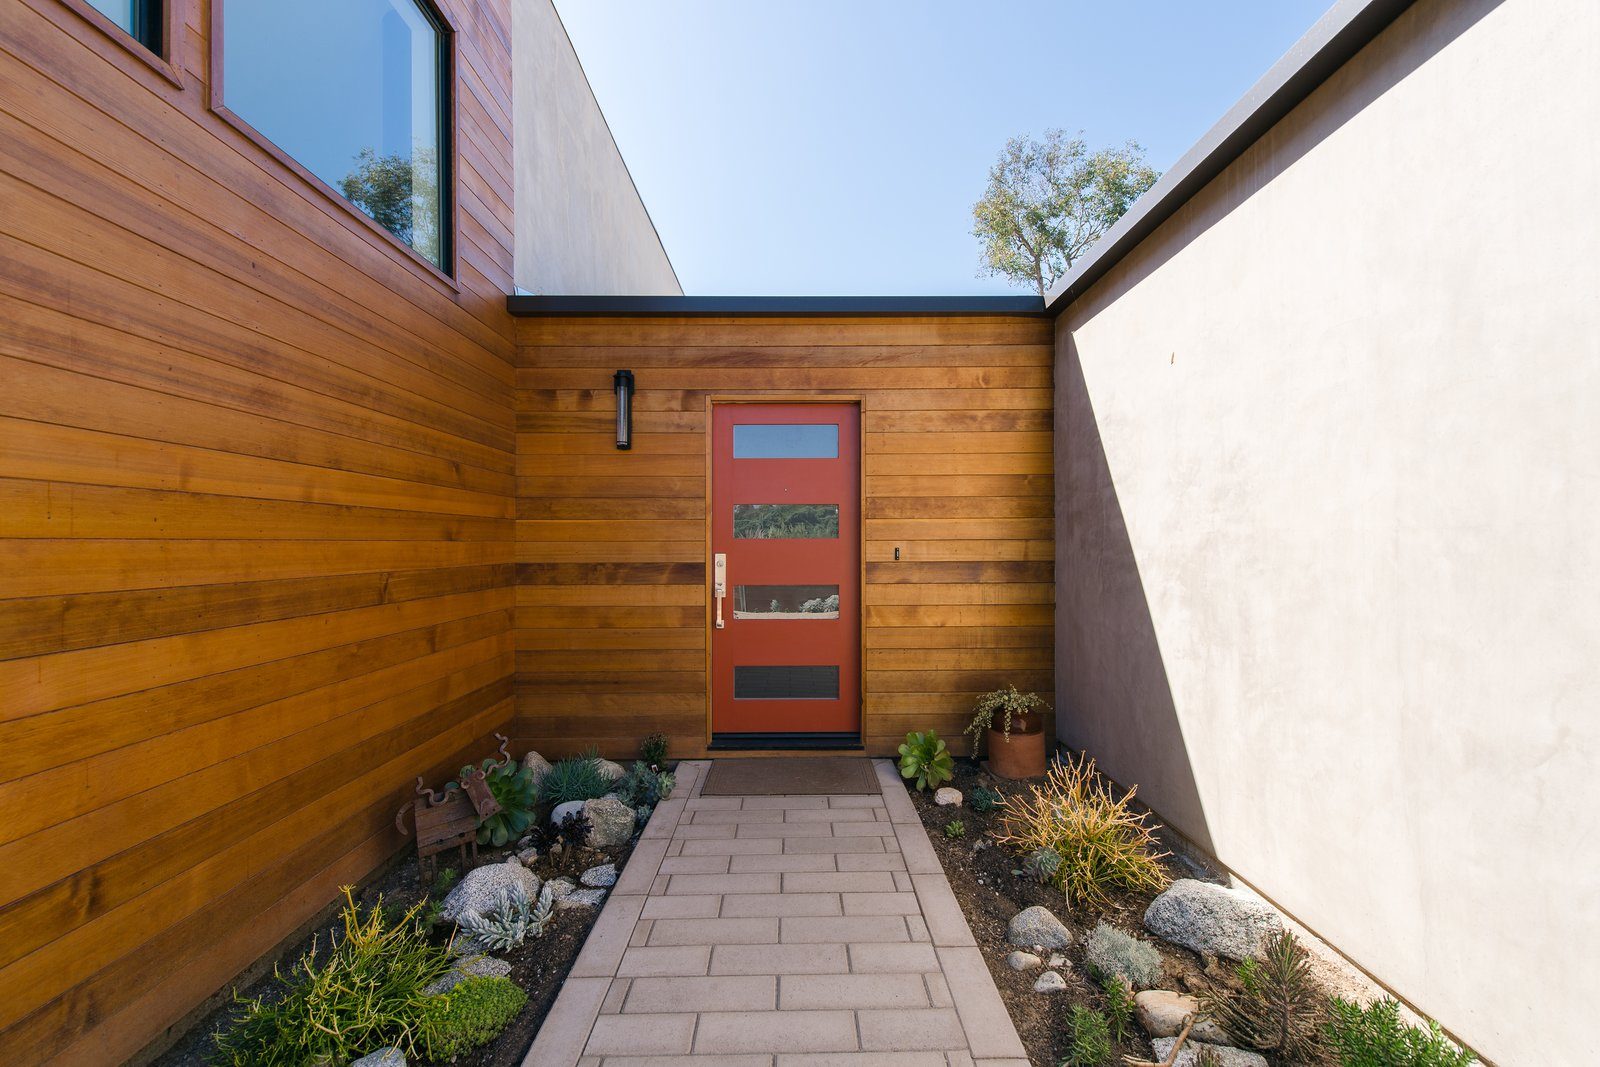 Exterior, Wood Siding Material, House Building Type, Stucco Siding Material, and Ranch Building Type Clear cedar wraps the corner at the approach, adding warmth, texture and visual interest to the entry.  A California Ranch Home, Reimagined by MYD studio, inc.